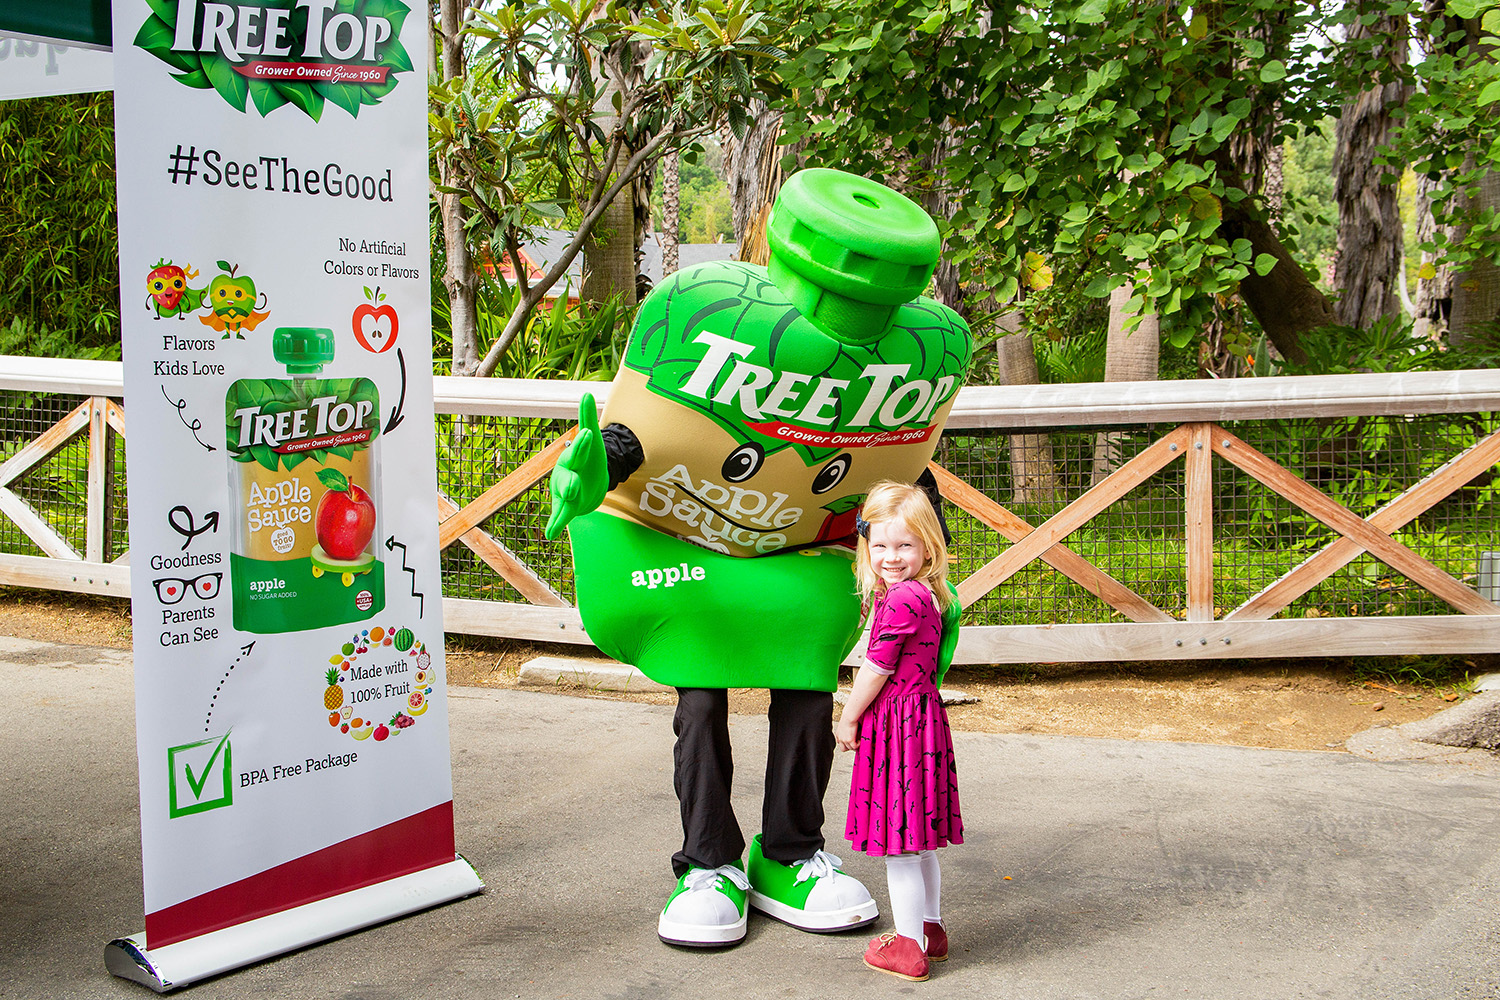 Looking for Halloween fun? Be sure to stop by the Tree Top booth at the Los Angeles zoo during Boo at the Zoo!